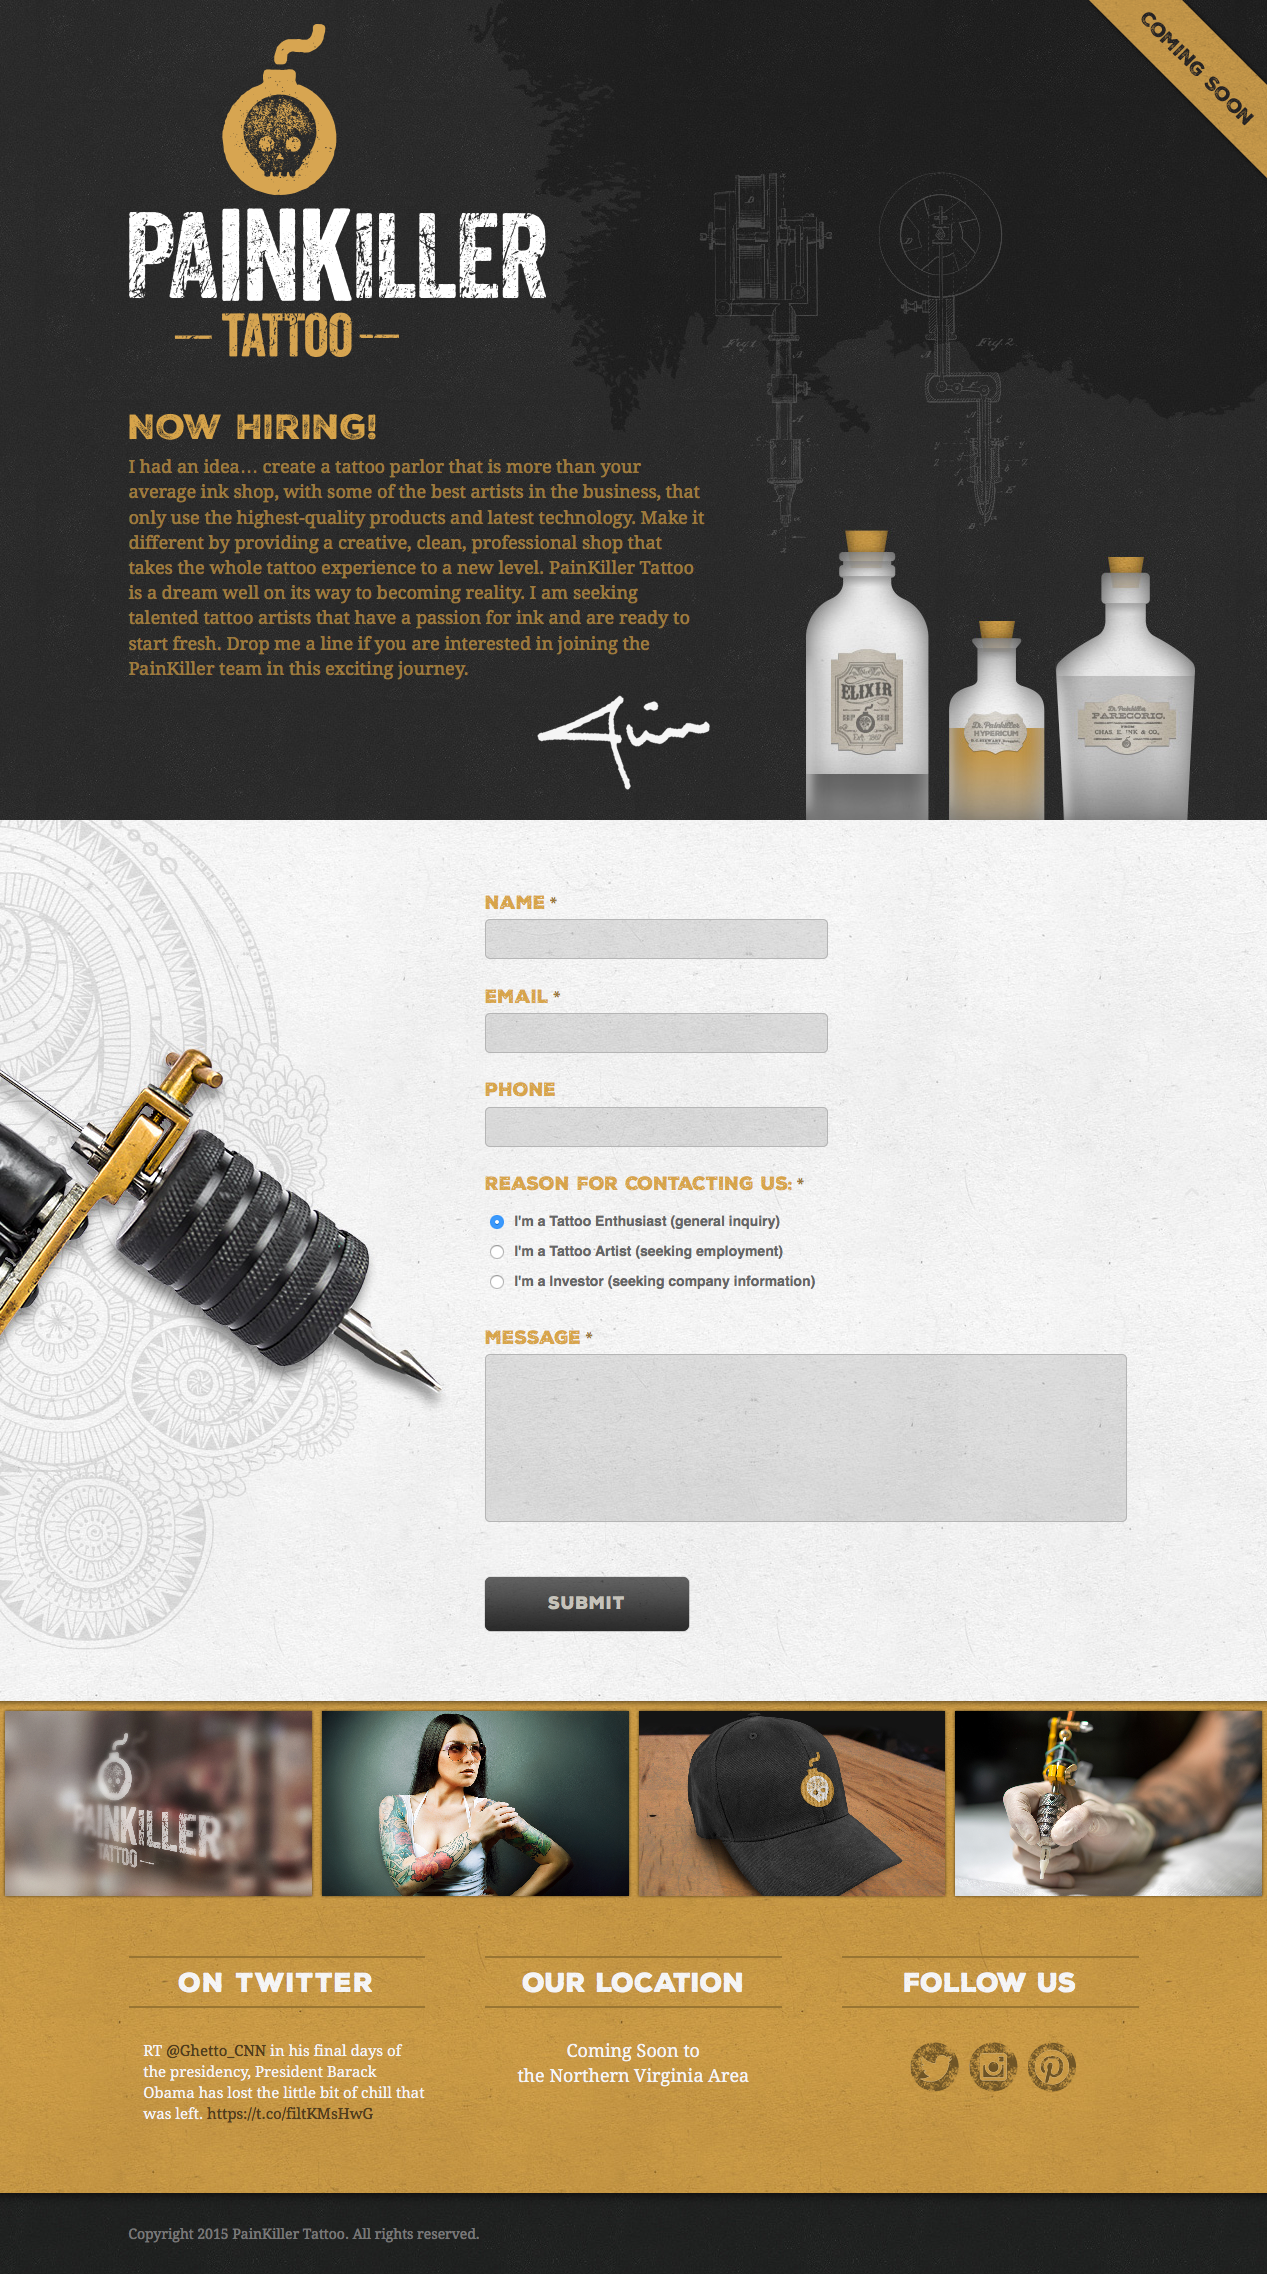 Painkiller Tattoo Website Design by ACS Creative